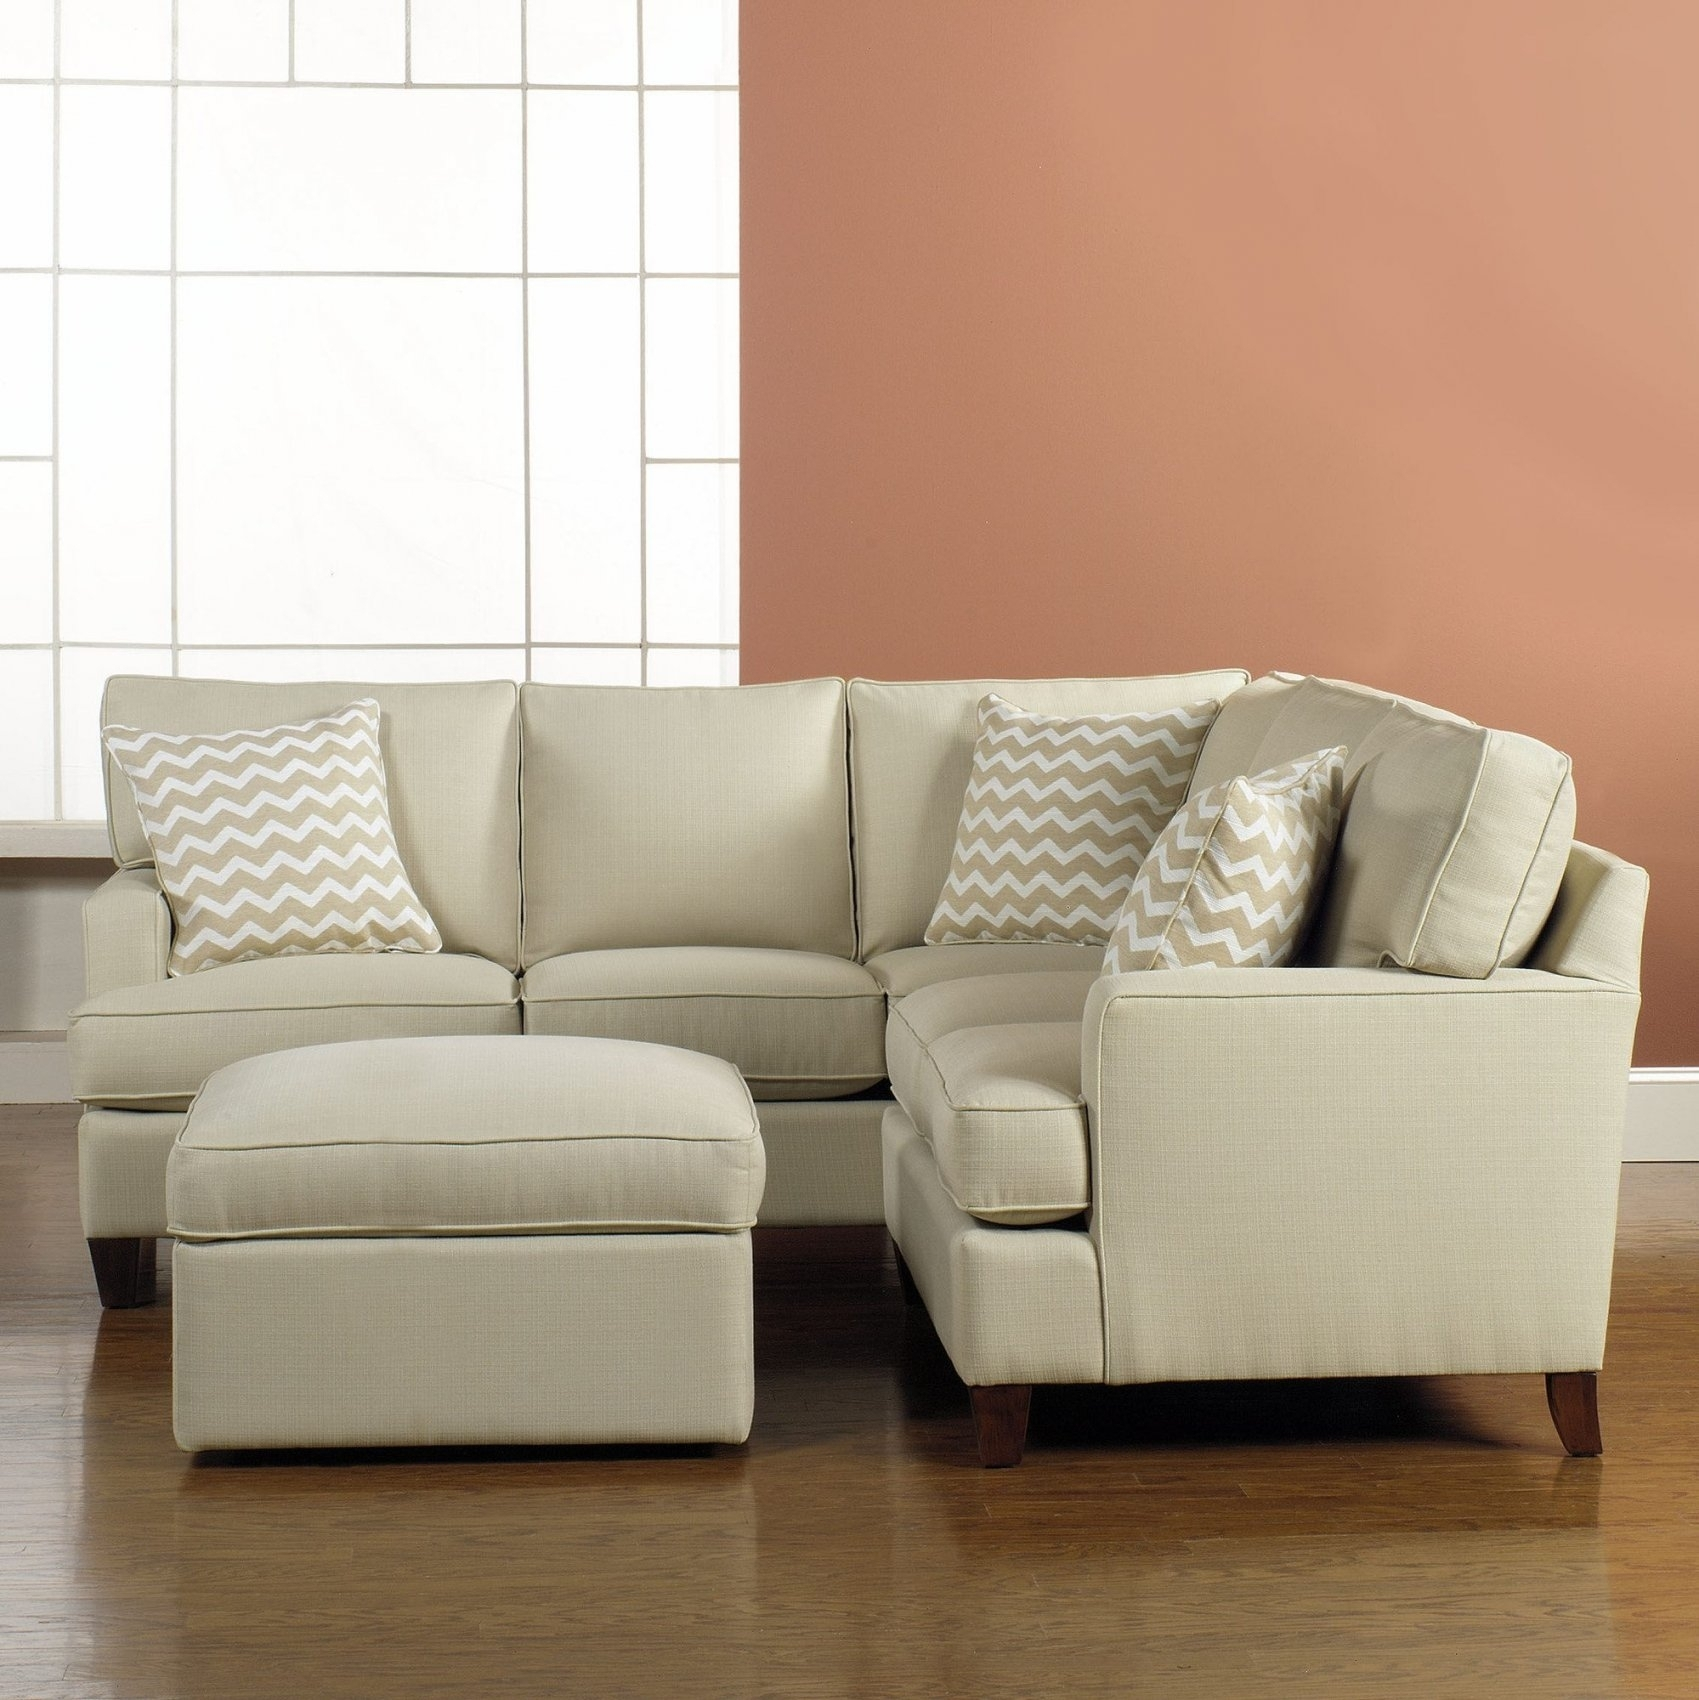 Sectional Sofa For Small Spaces 94 In Living Room Sofa With with Sectional Sofas for Small Areas (Image 7 of 10)